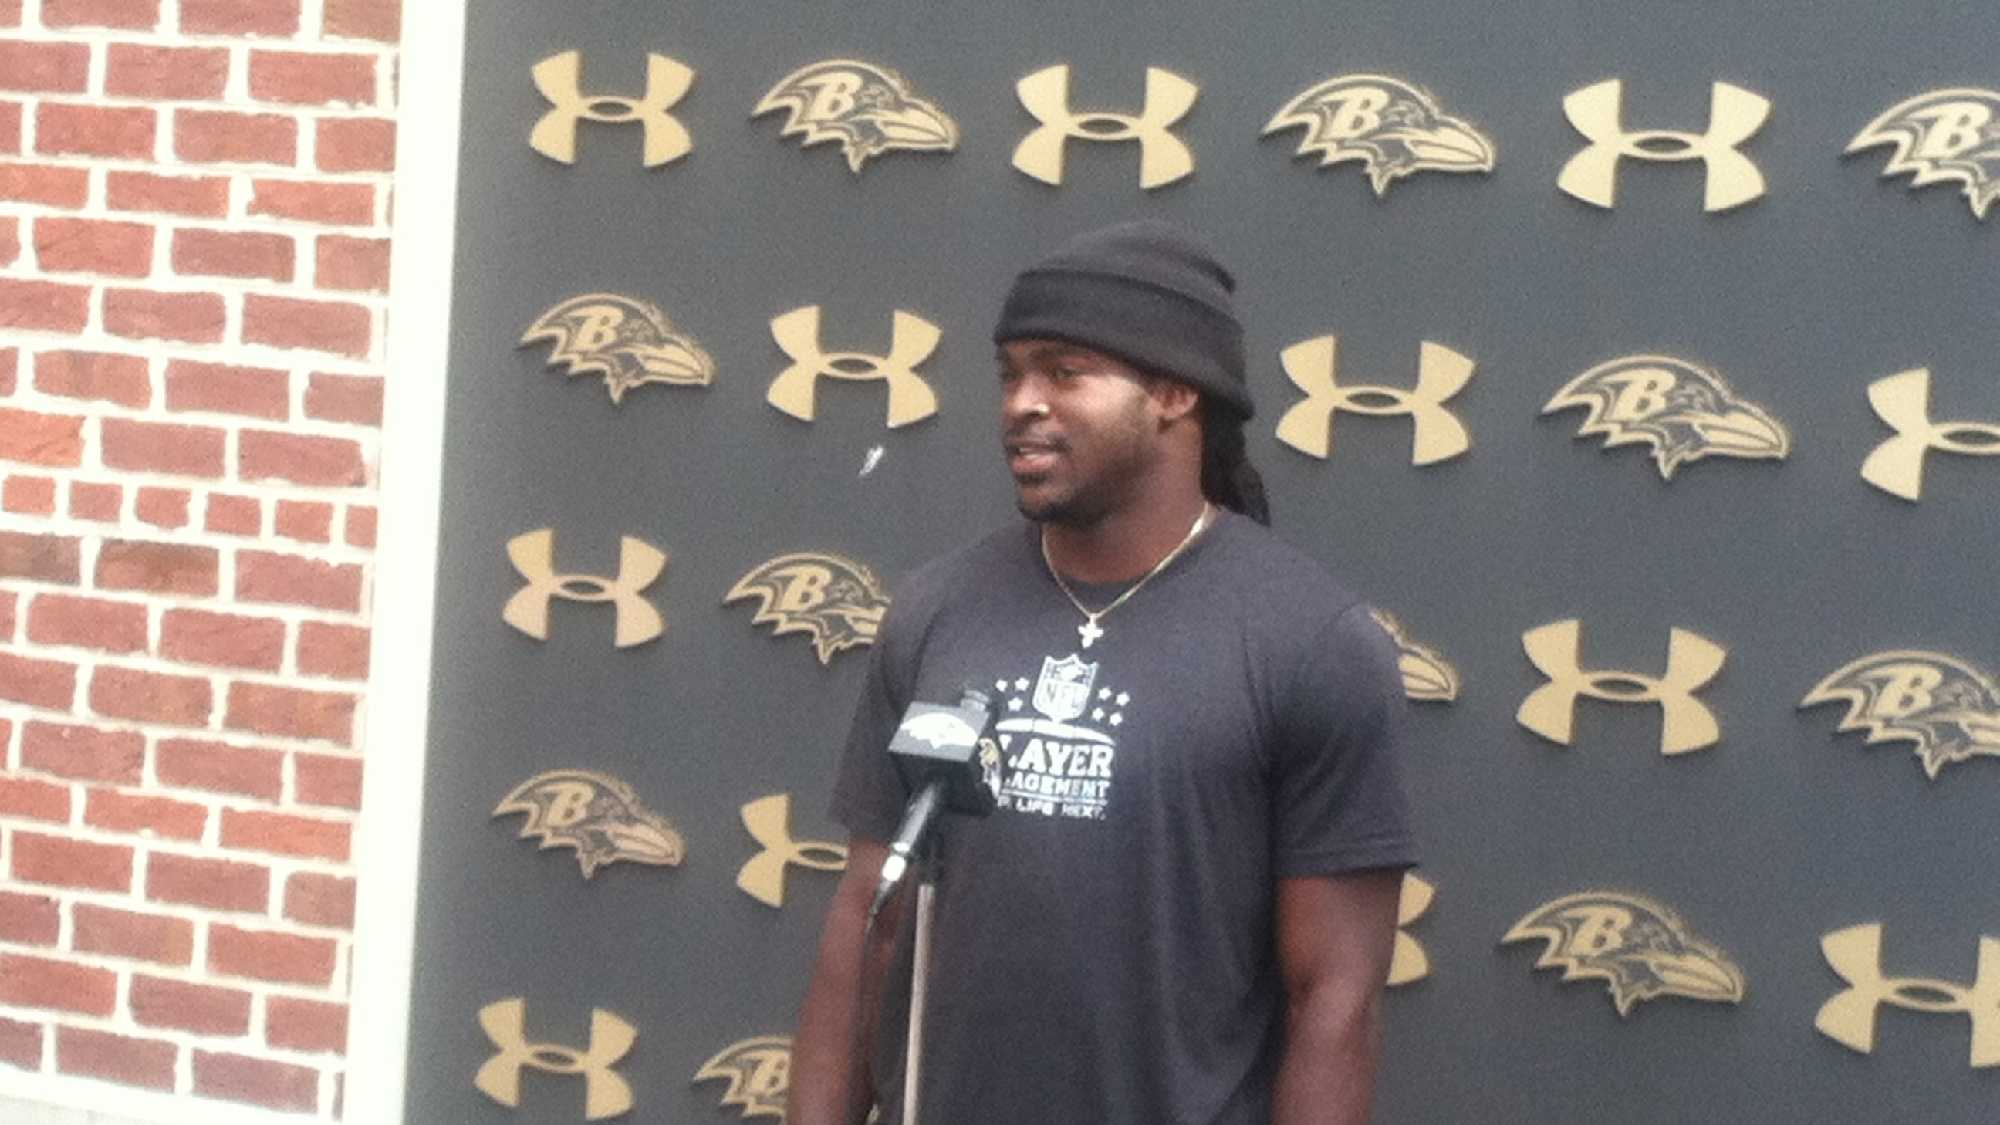 Ravens rookie receiver Breshad Perriman addresses the media as training camp begins in Owings Mills.